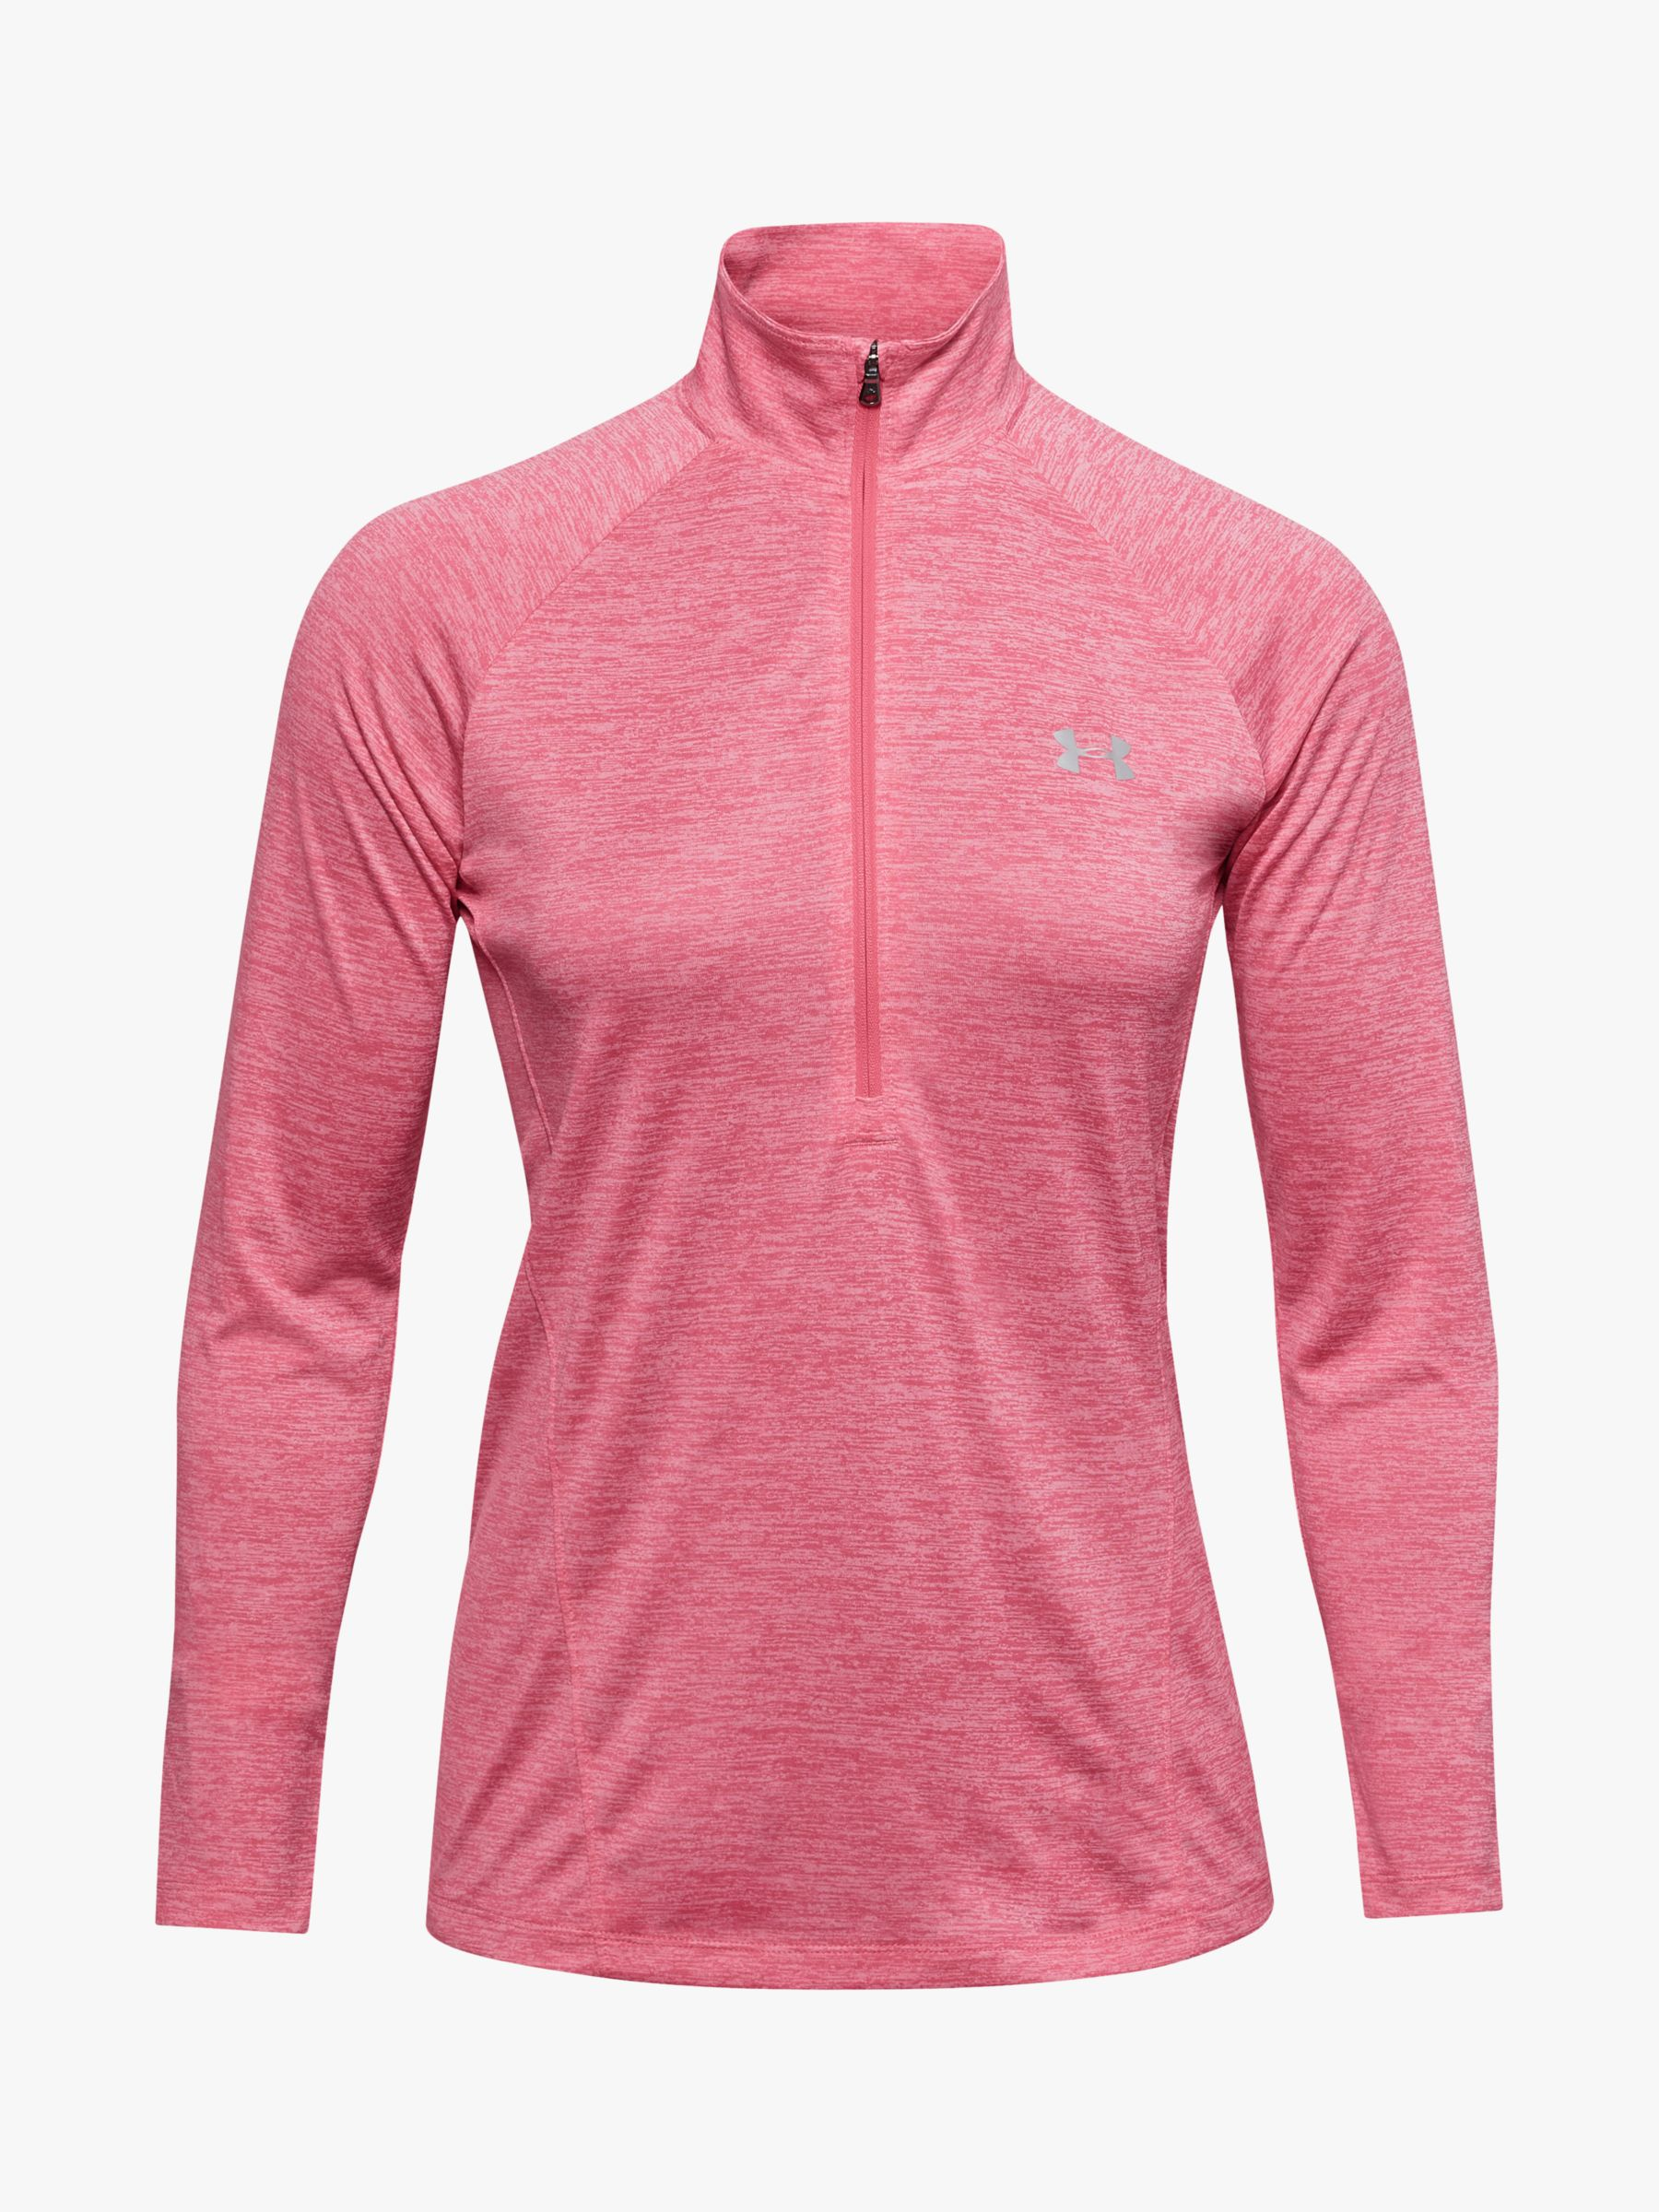 Sz Pink Women's  Long Sleeve Top Small Under Armour